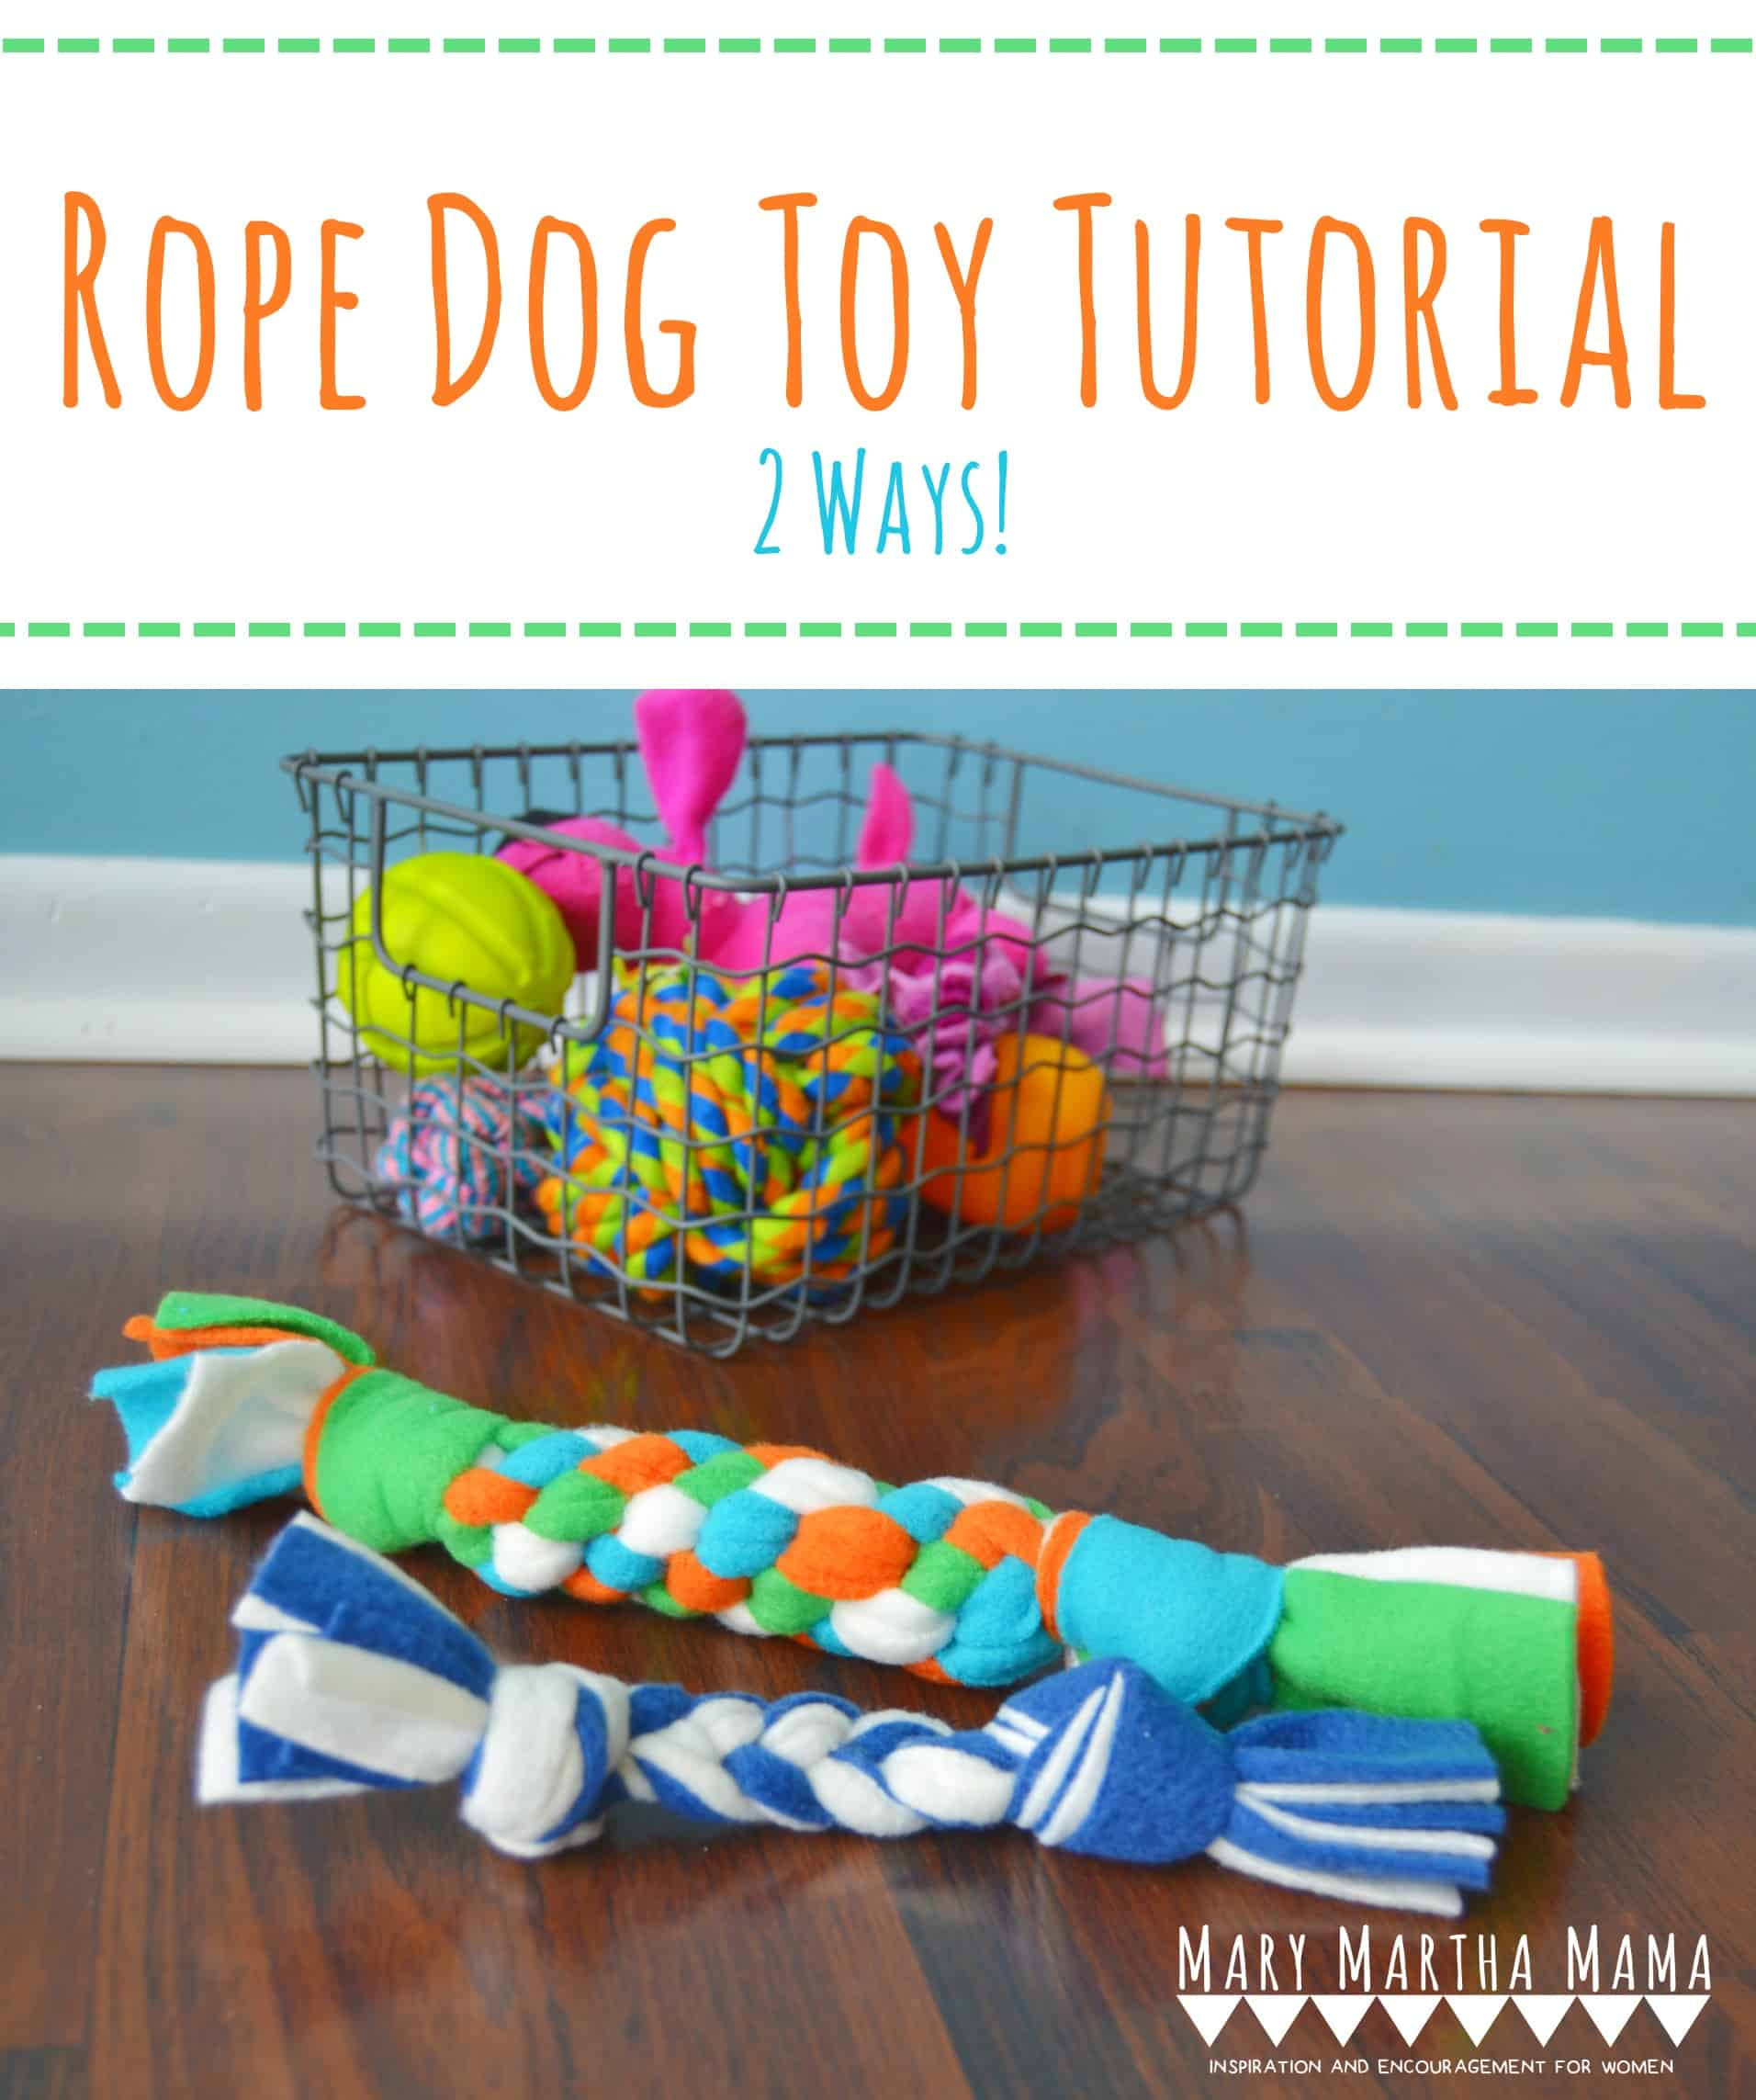 Follow this DIY Fleece Dog Toy Tutorial to learn how to make 2 types of homemade fleece dog toys. #diyfleecedogtoys #homemadefleecedogtoys